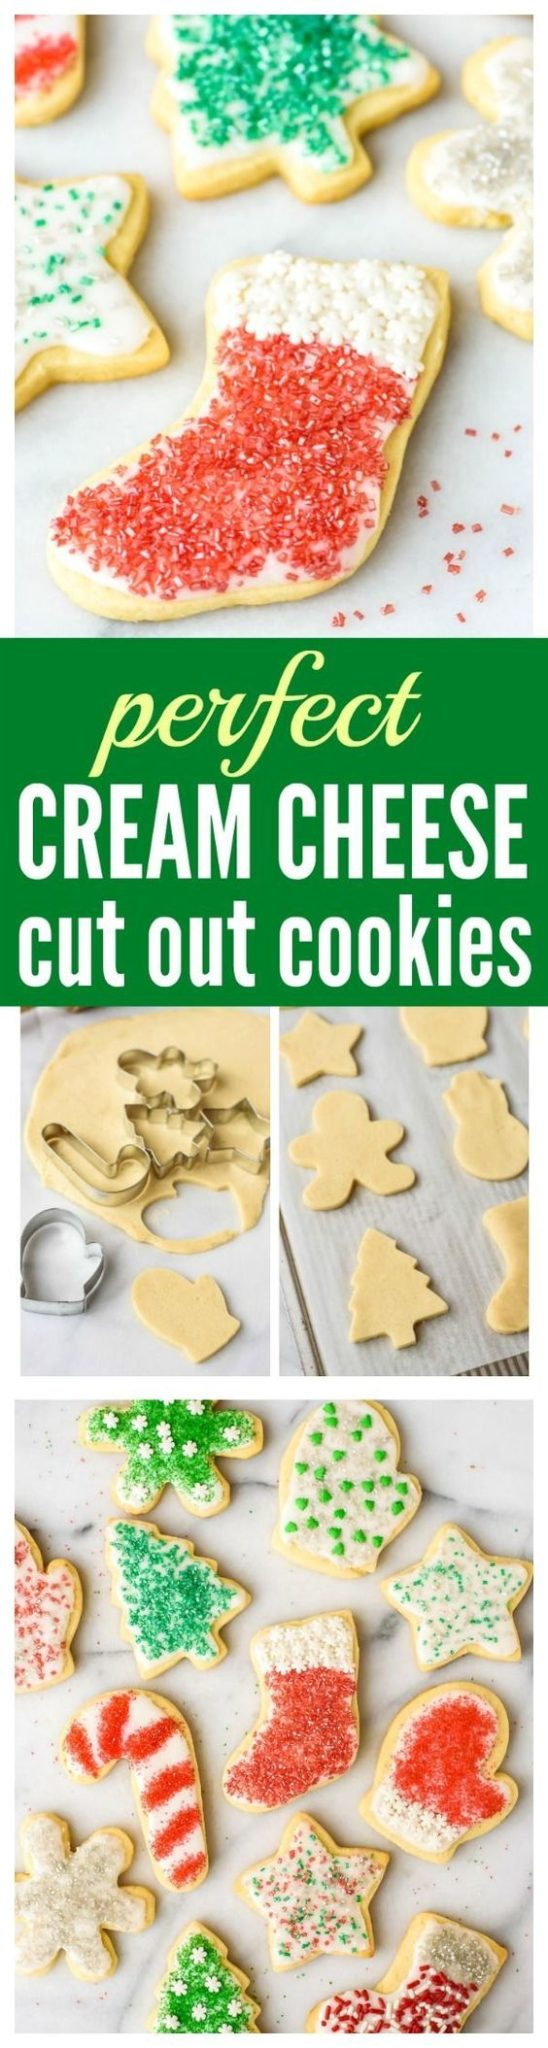 Perfect Cream Cheese Sugar Cookies RECIPE via Well Plated - The BEST Cut Out Sugar Cookies from scratch, with step-by-step photos. Cream cheese is the secret ingredient that makes the sugar cookies super soft, even days after they are baked. This is the only cut out Christmas cookie recipe you will ever need! #chrstmascookies #christmascandy #christmastreats #holidaydesserts #holidayrecipes #christmascandies #holidaygiftplates